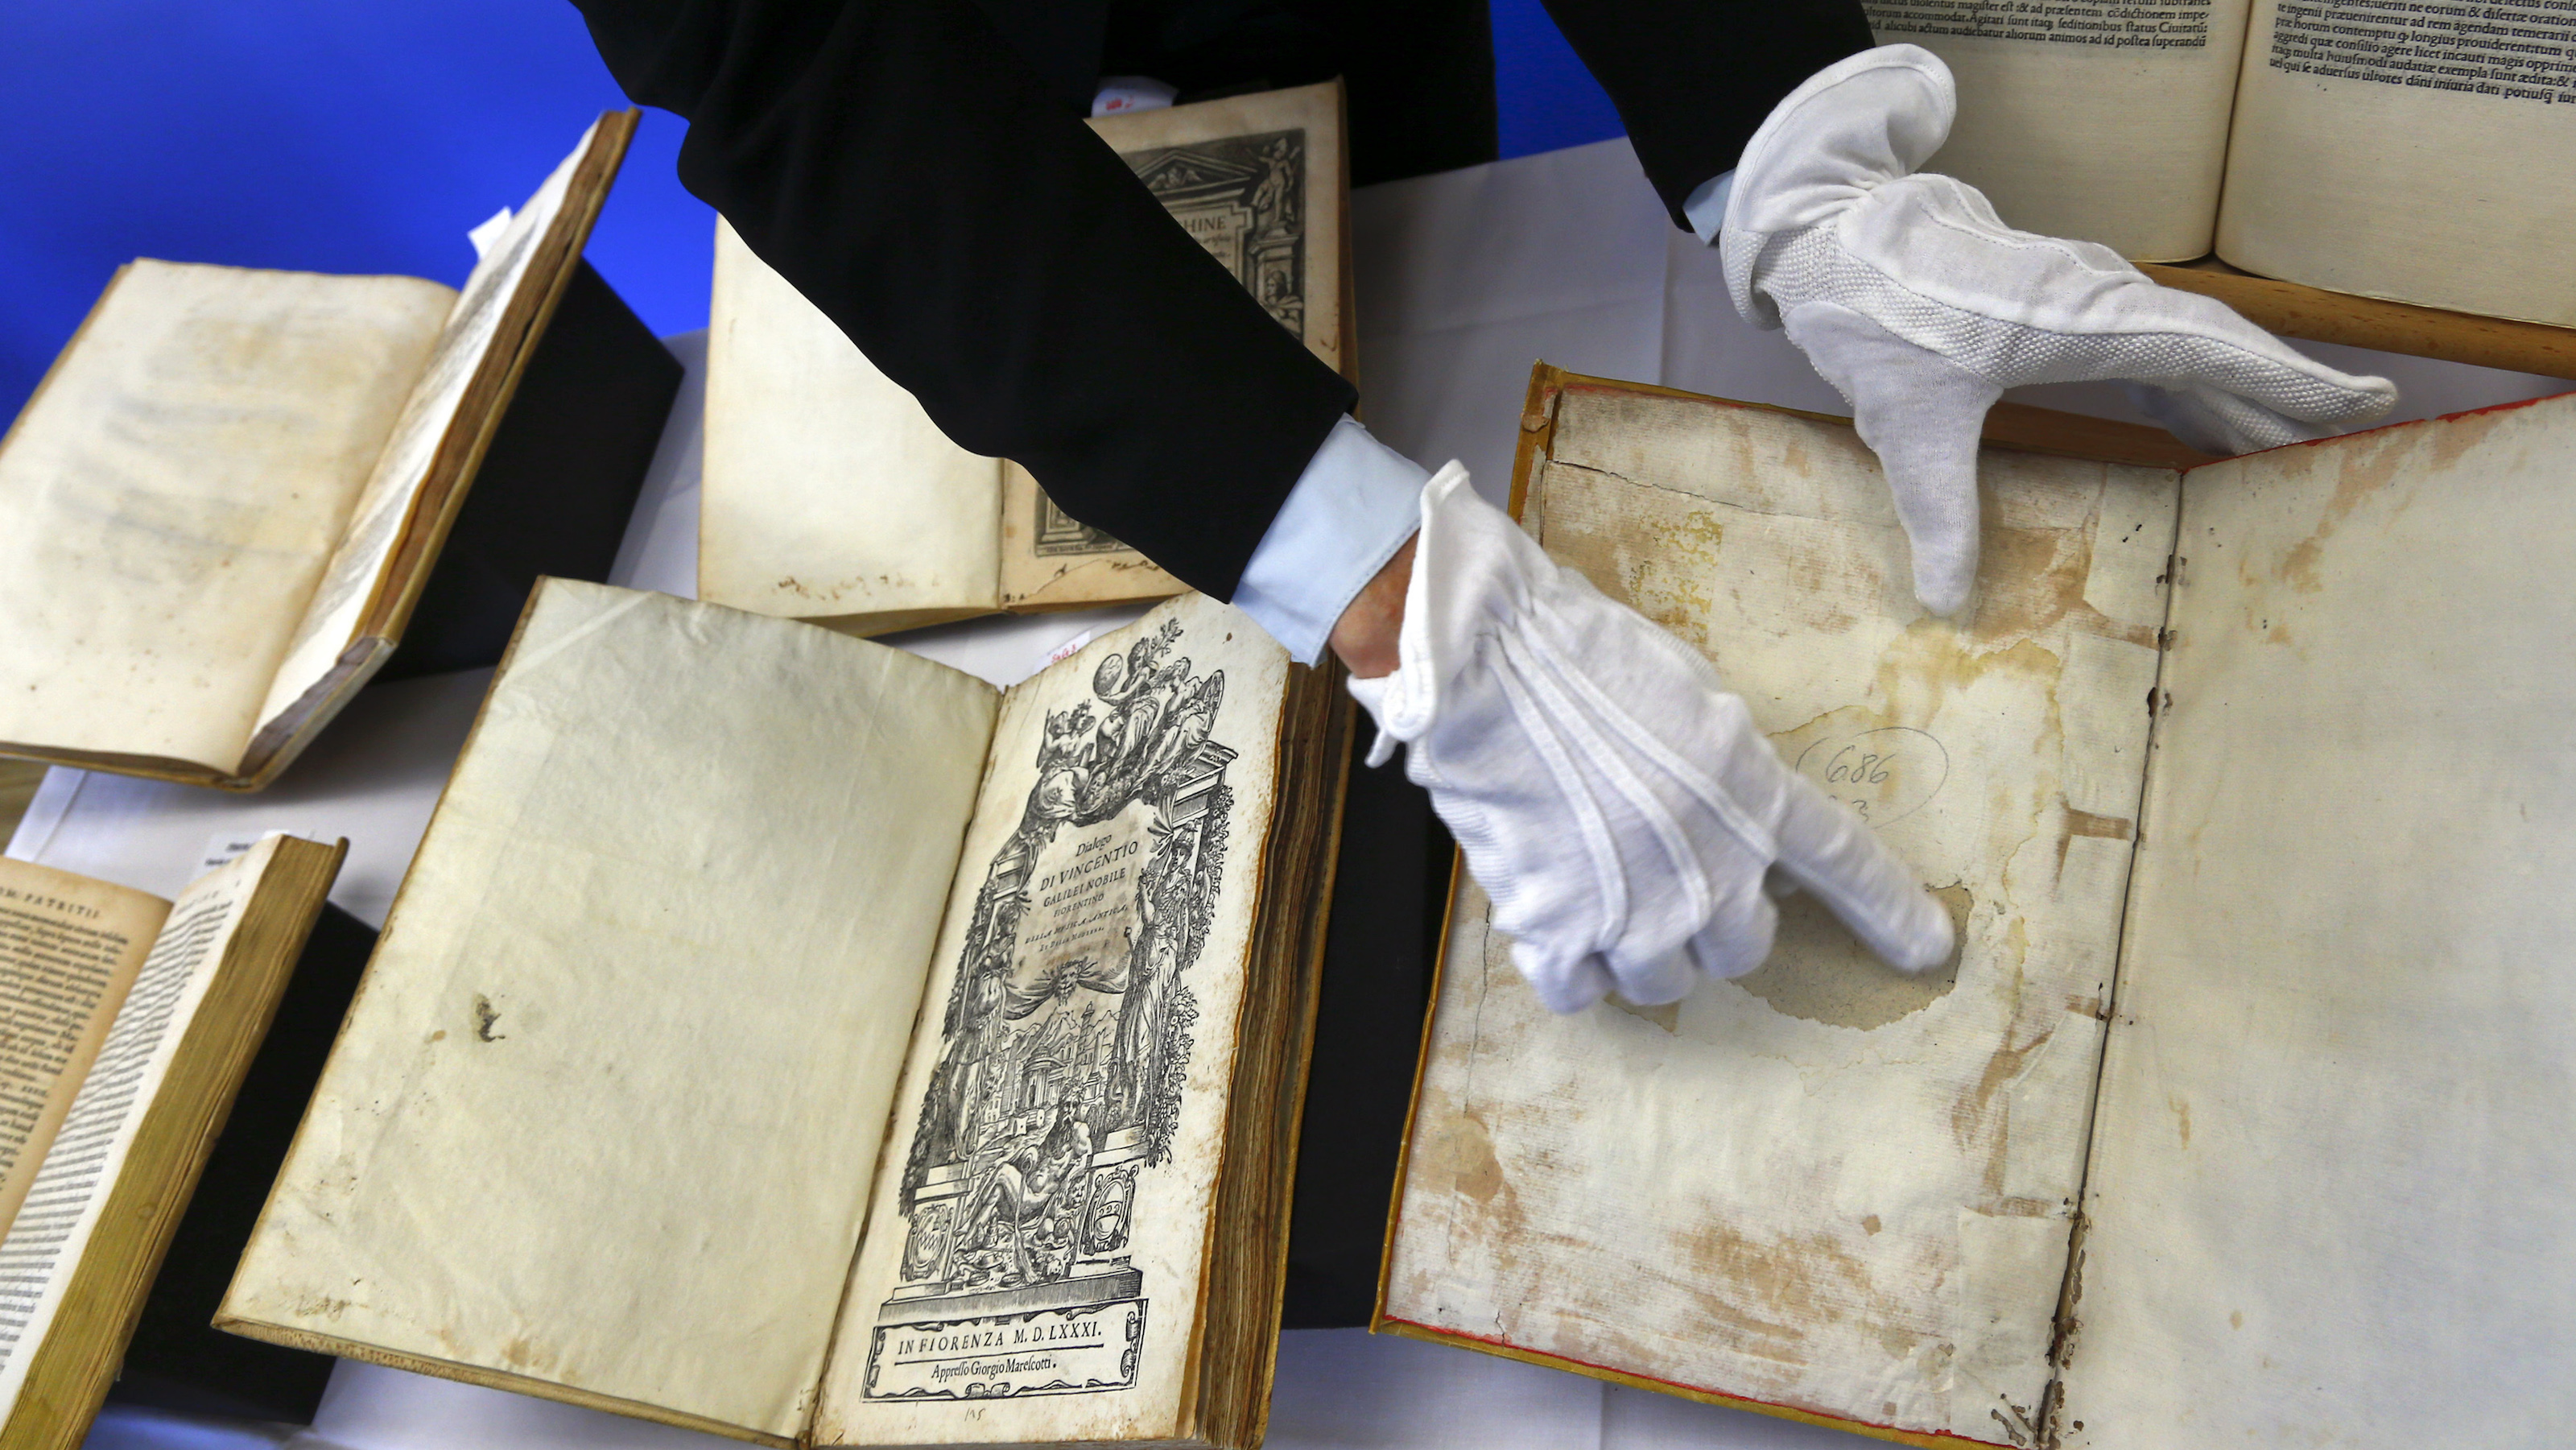 Some of over 500 ancient books, with original editions of Galileo Galilei and Nicolaus Copernicus among them, is presented by German police during a news conference at the Munich Federal state police headquarters, February 13, 2015. The books, mostly from the 16th and 17th centuries, were seized at a Munich auction house in May 2012 and will be returned to Italy, where they were stolen from libraries in 2011-2012.     REUTERS/Michael Dalder (GERMANY  - Tags: CRIME LAW ENTERTAINMENT SOCIETY)   - RTR4PFKQ